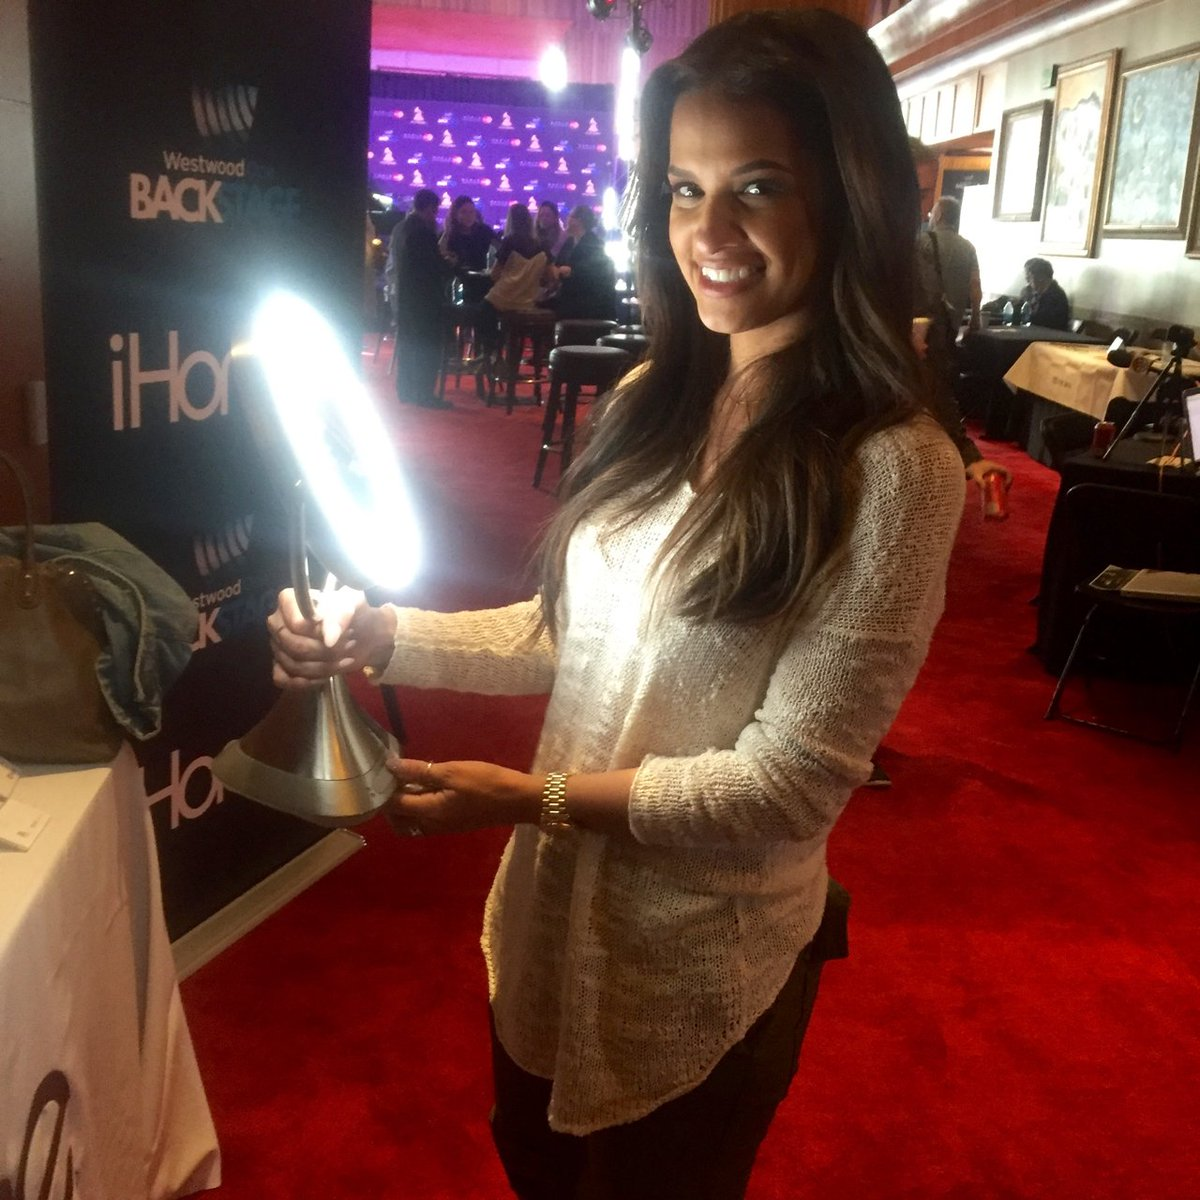 Had an amazing time at @WestwoodOne's Backstage at @TheGRAMMYs! @rocsidiaz Check it out: https://t.co/qafxtIwa1V https://t.co/Blg8QJnRMl